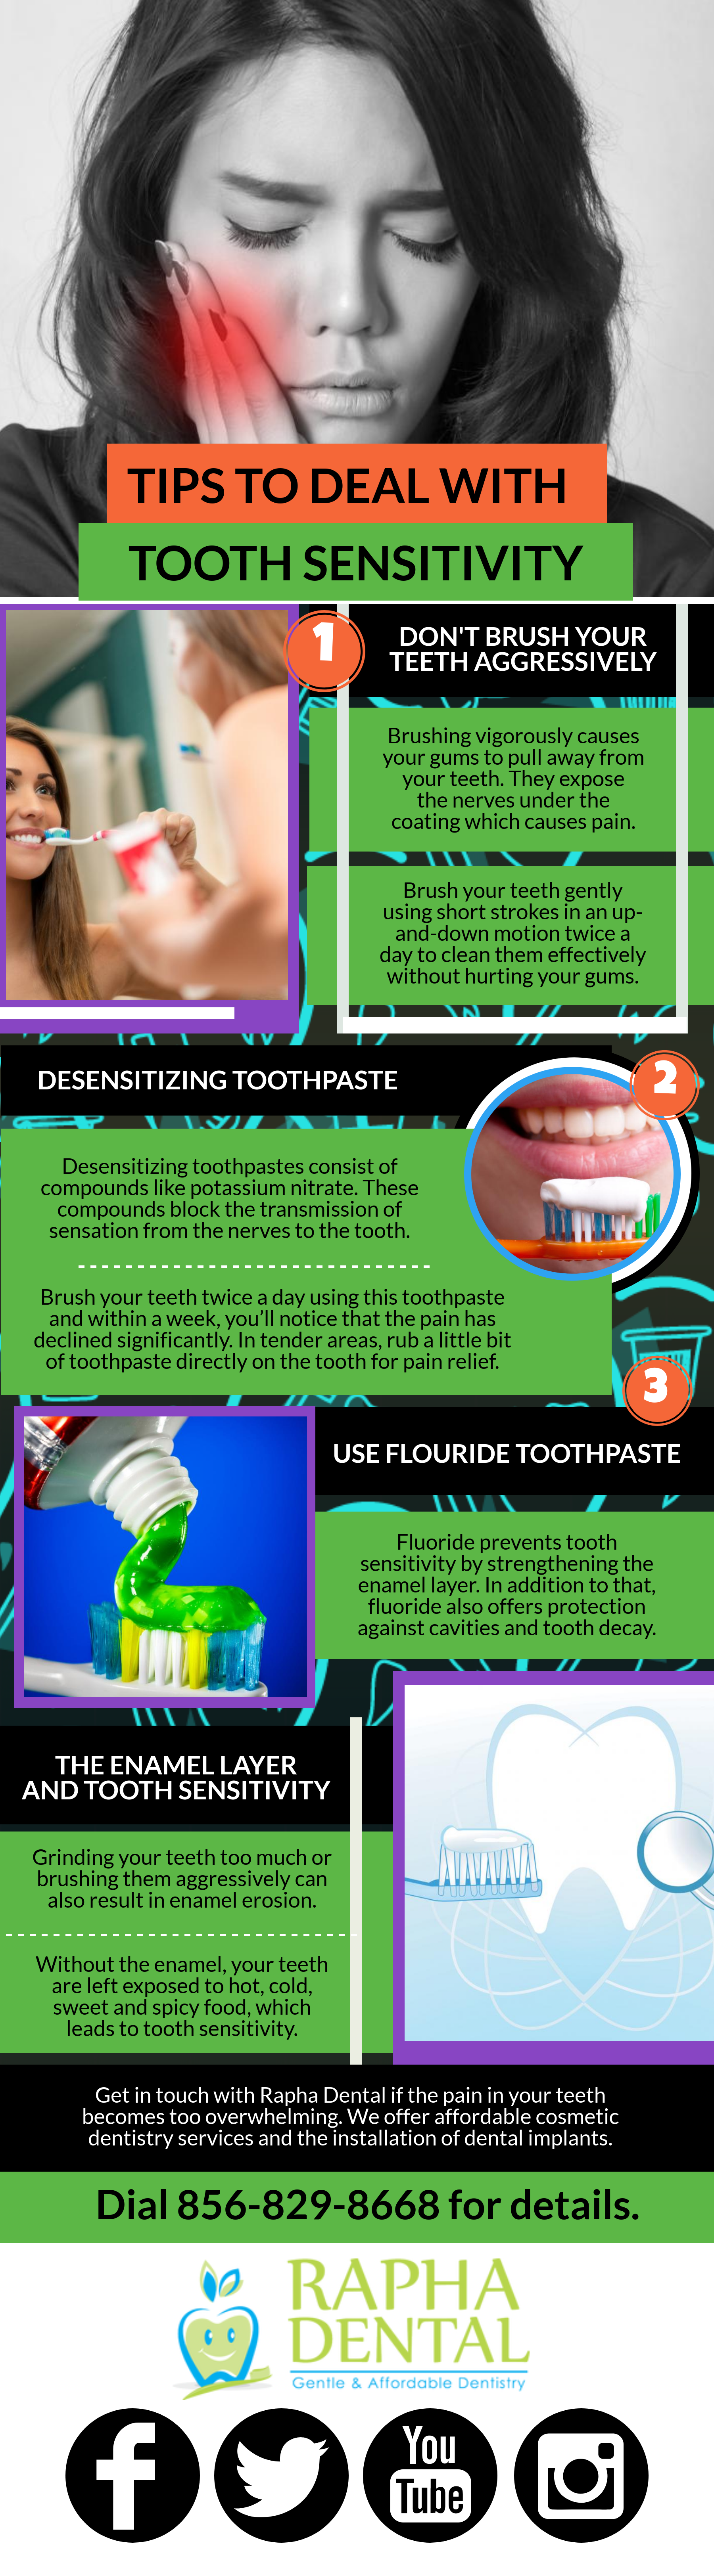 Tips To Deal With Tooth Sensitivity